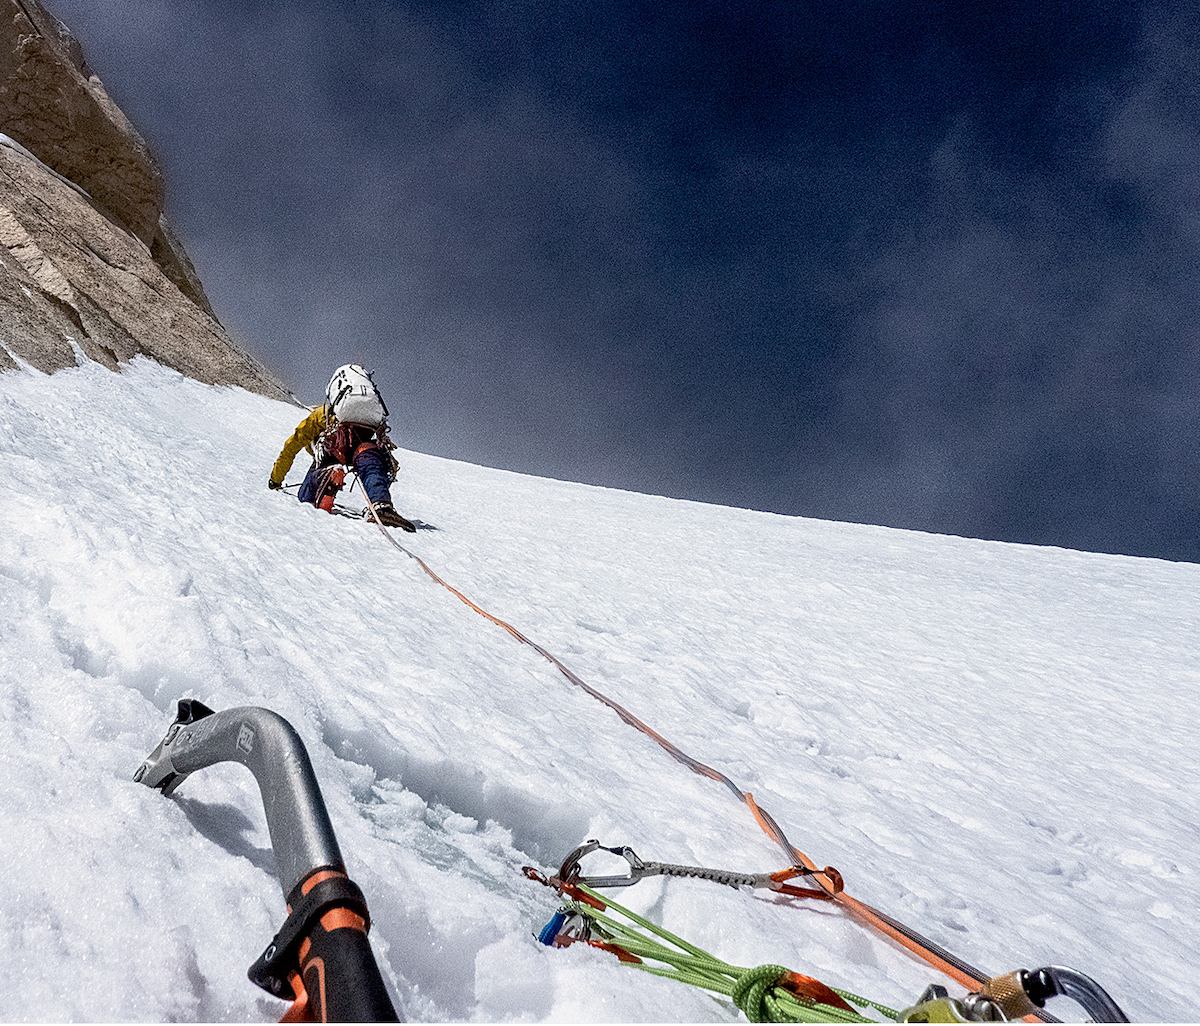 Wright during the final push toward the summit. [Photo] Graham Zimmerman